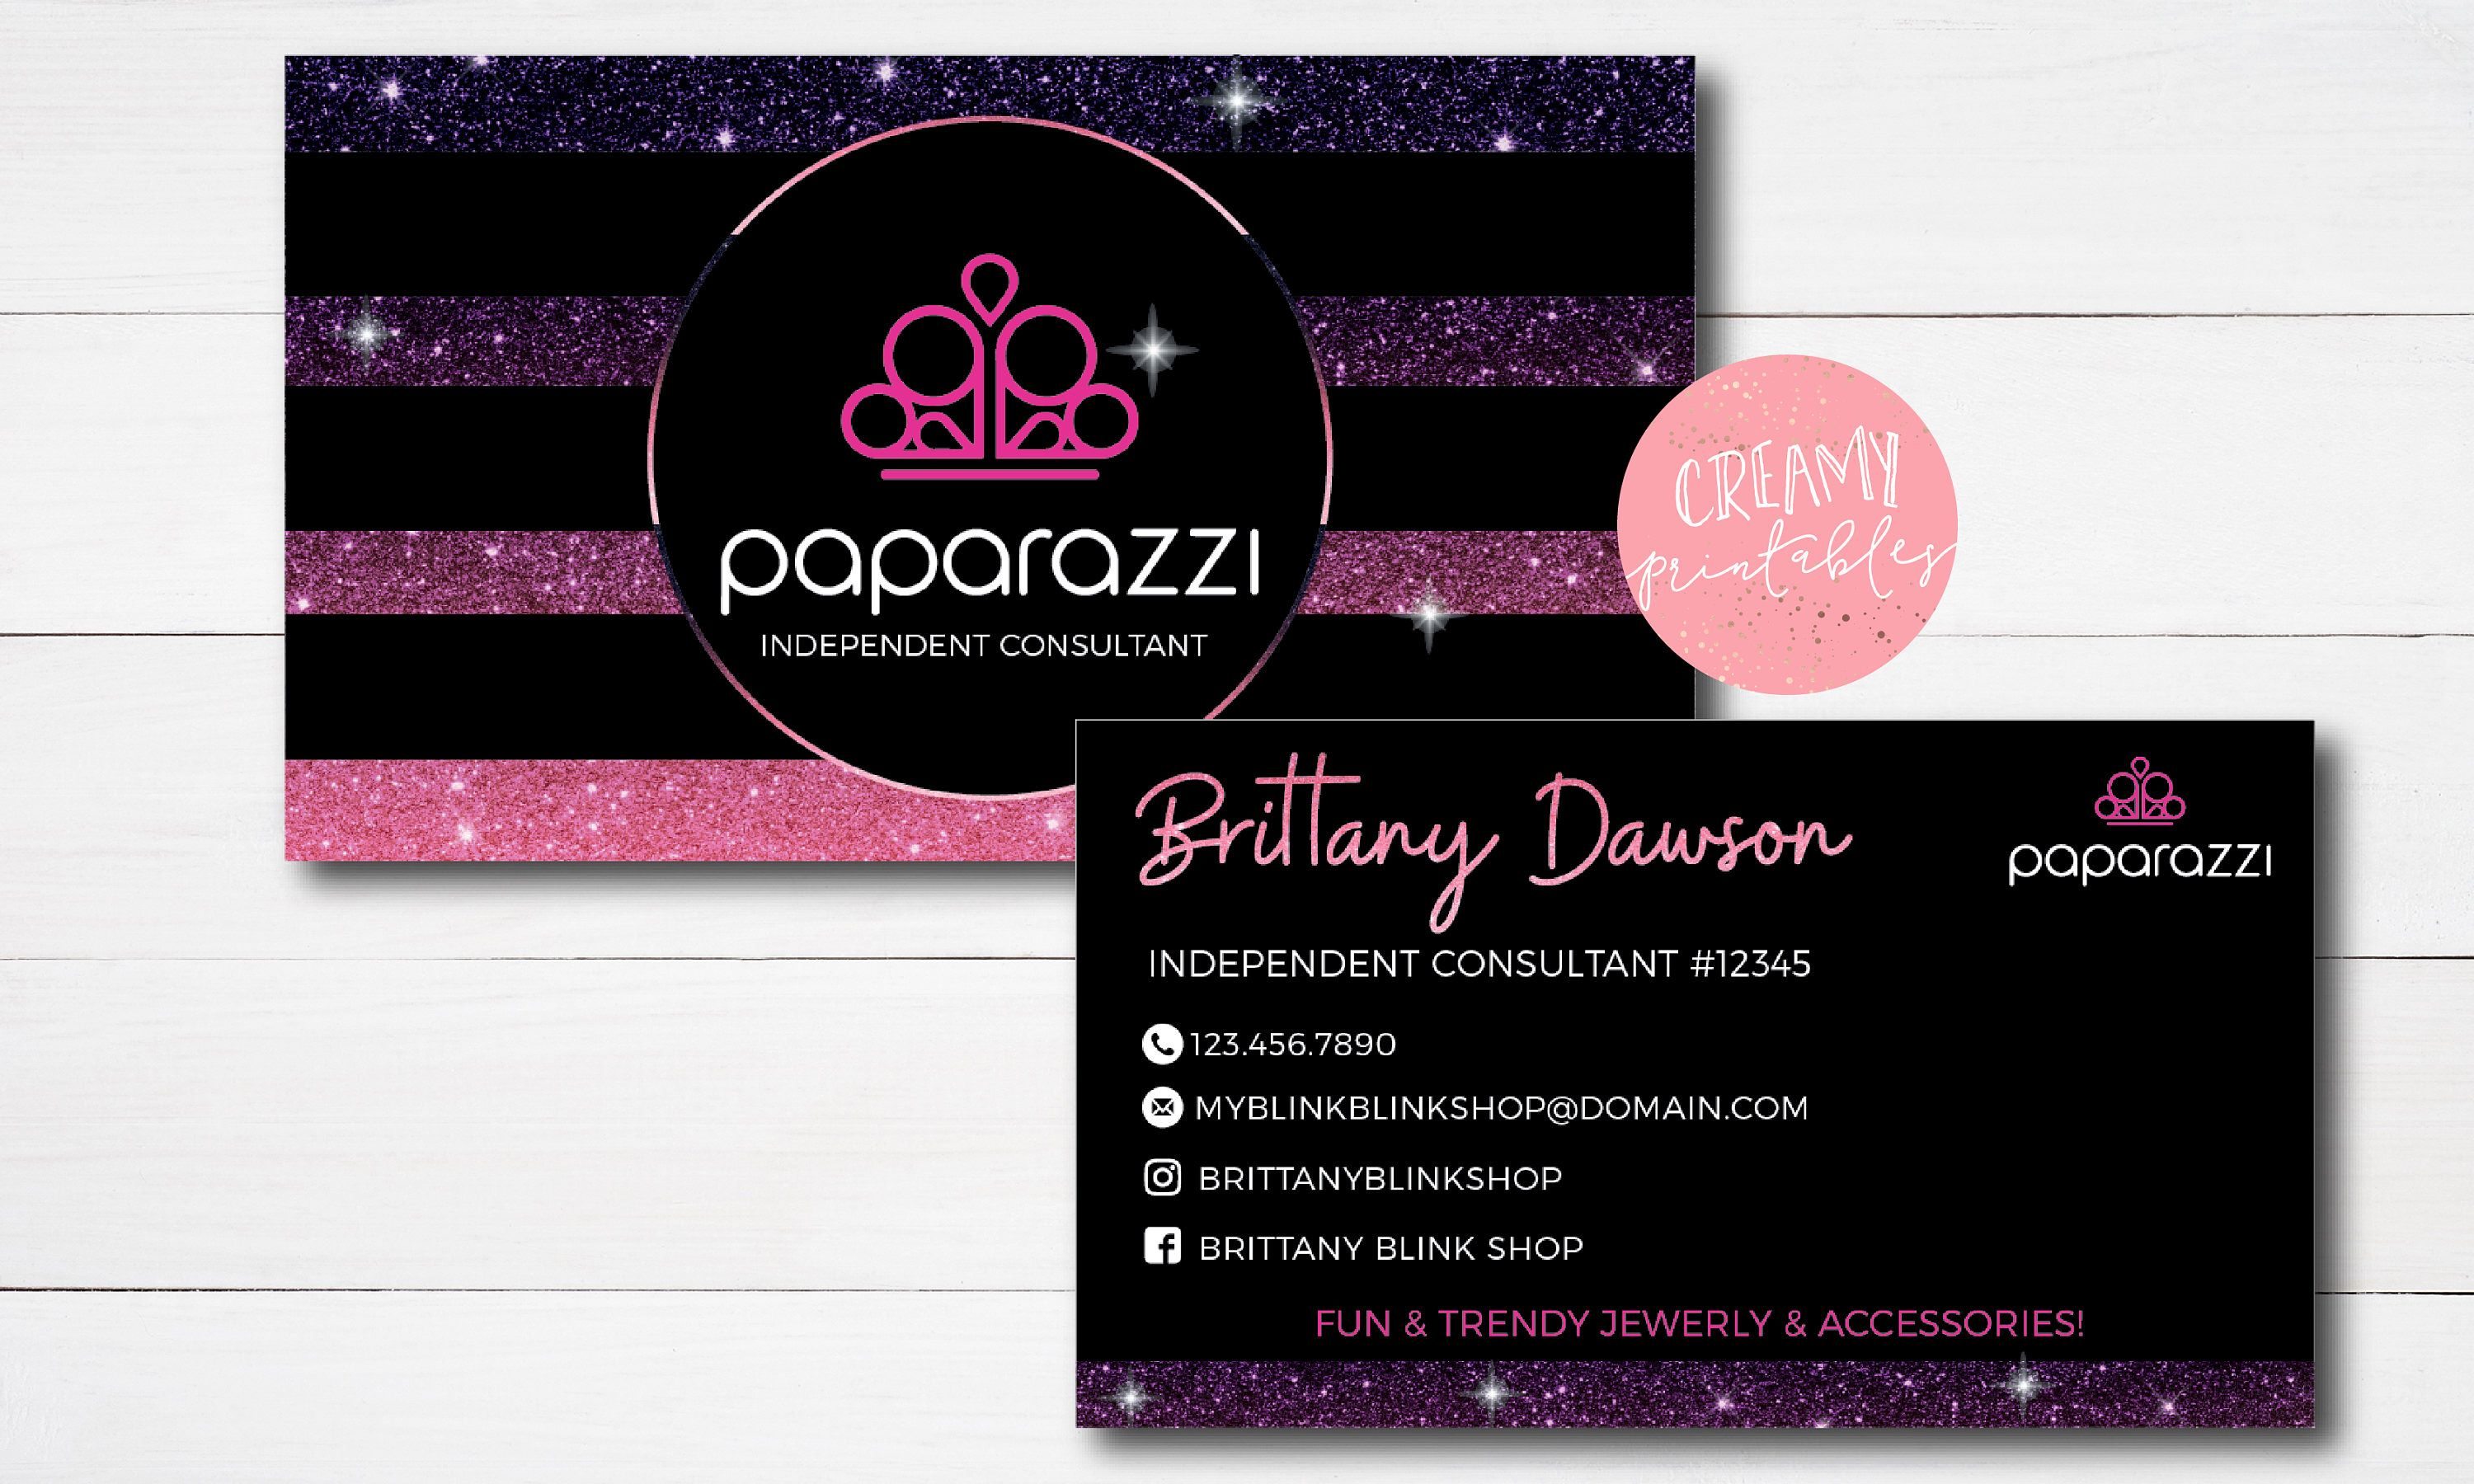 Paparazzi Business Cards Free Personalized Paparazzi Jewelry Consultant Card Free Business Card Templates Printing Business Cards Vistaprint Business Cards